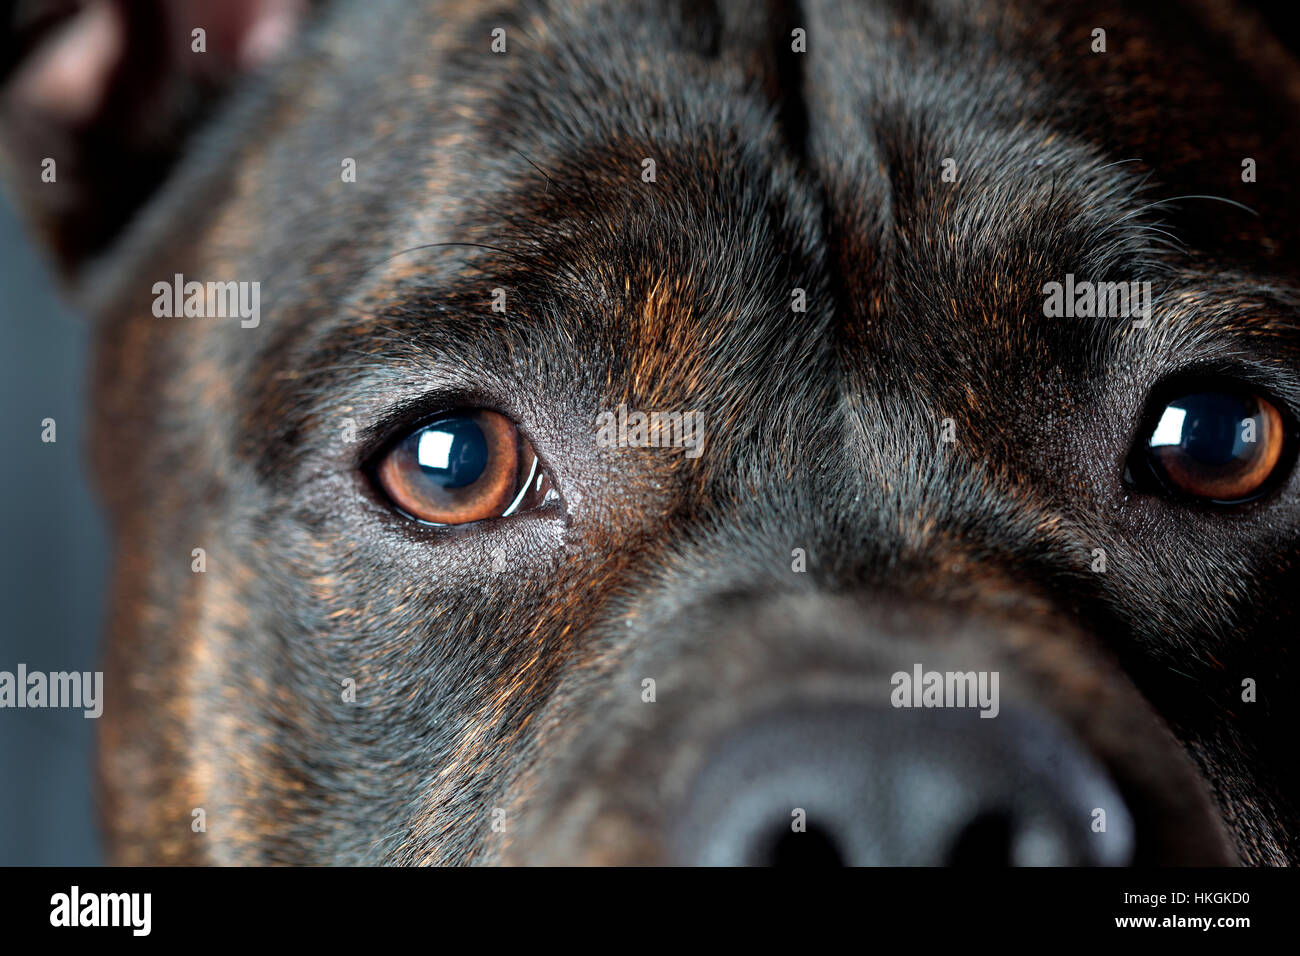 Staffordshire bull terrier dog closeup in studio - Stock Image